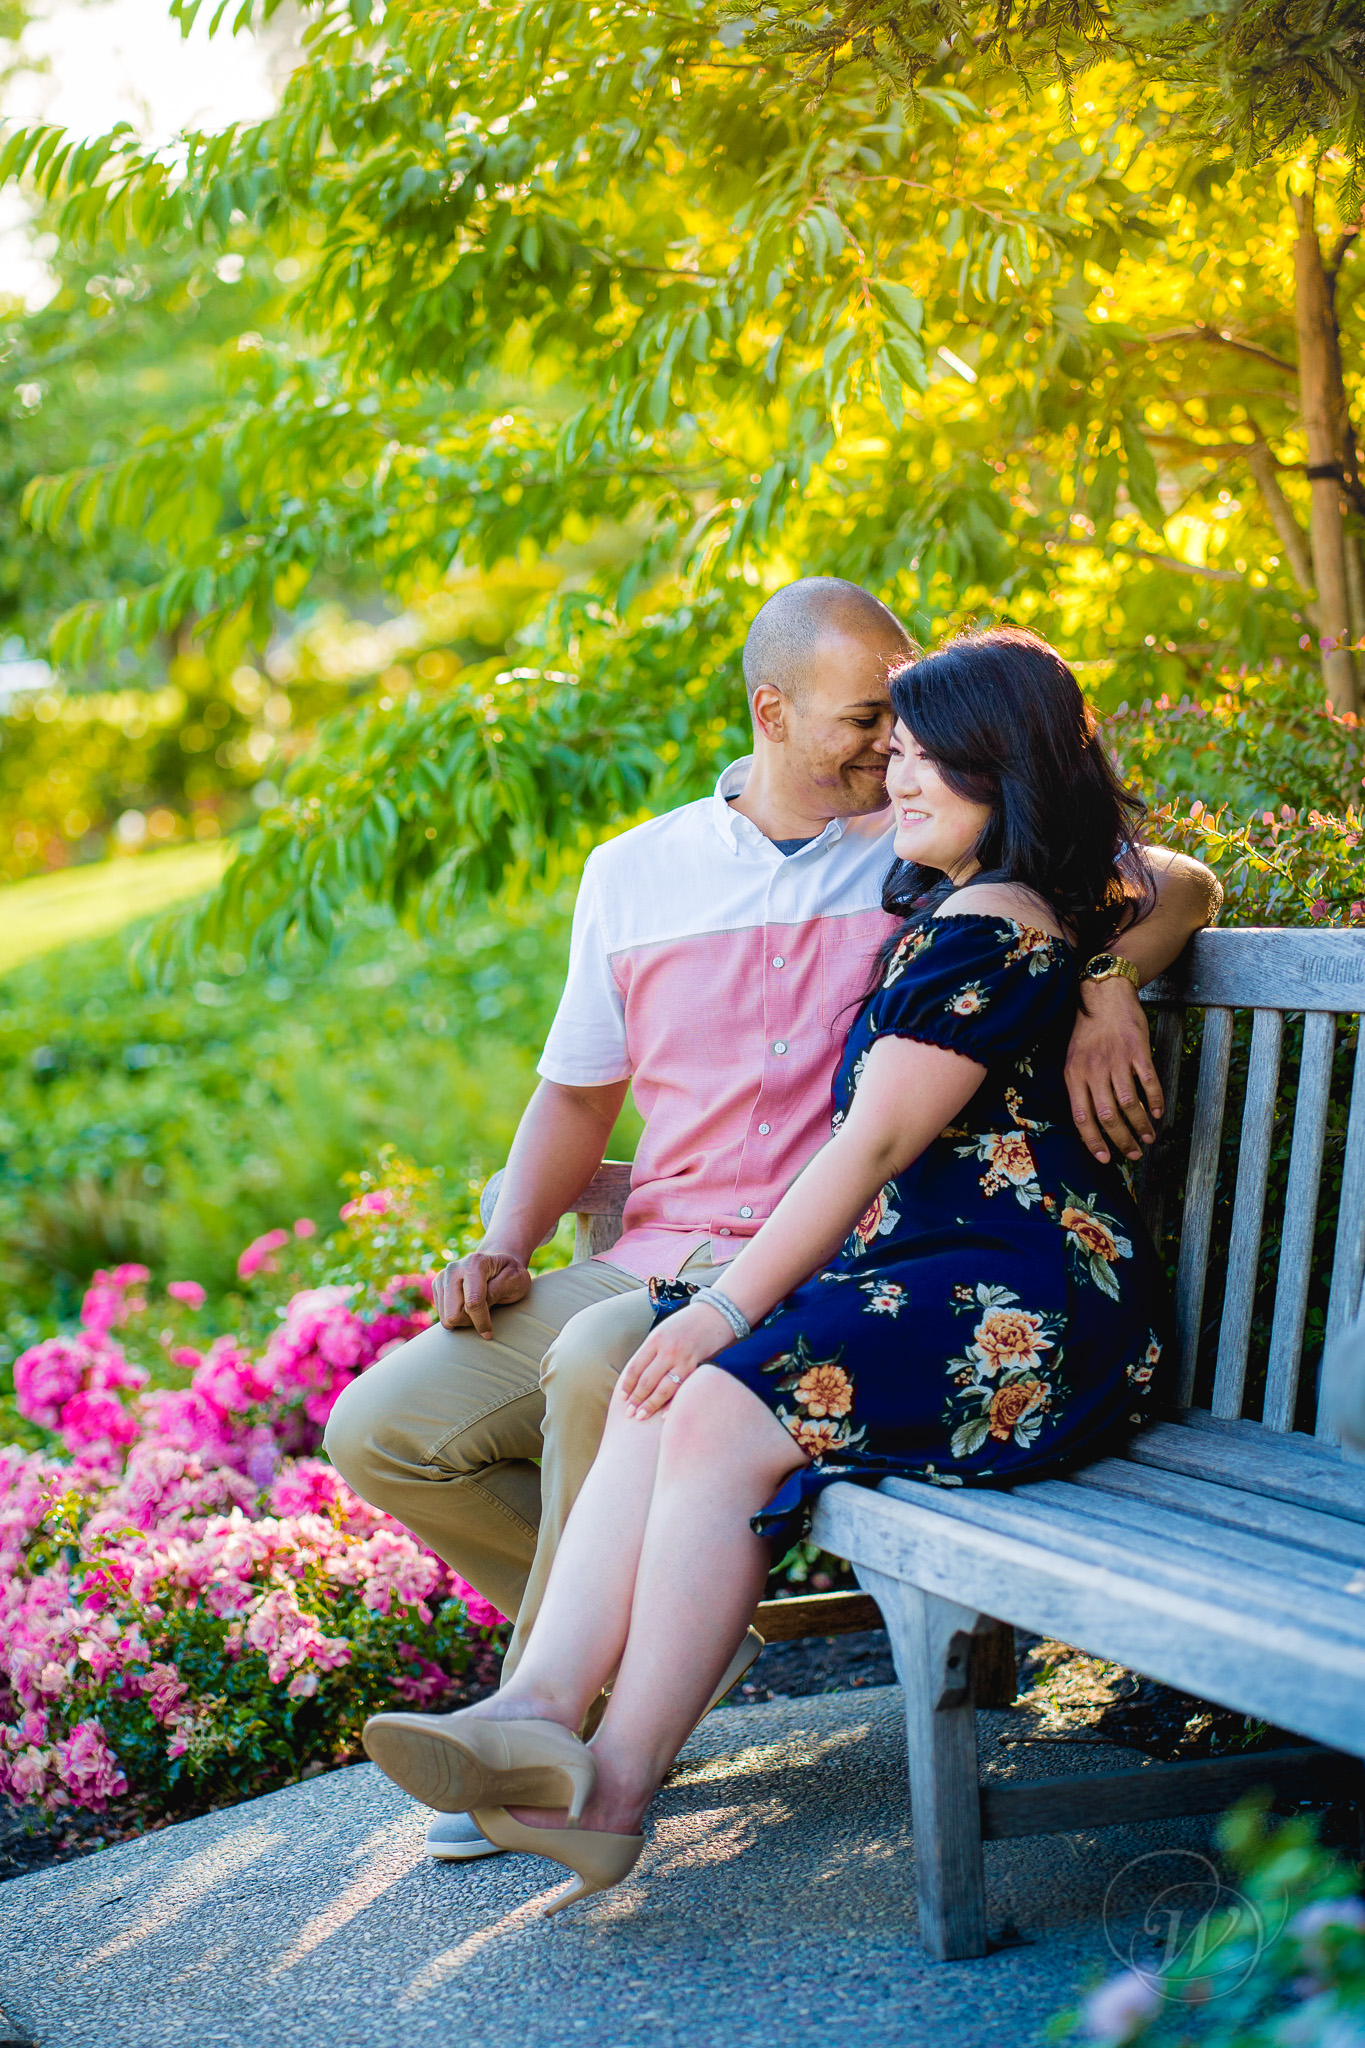 2019.06.16_Mosara-Brandon_Engagement_64.jpg